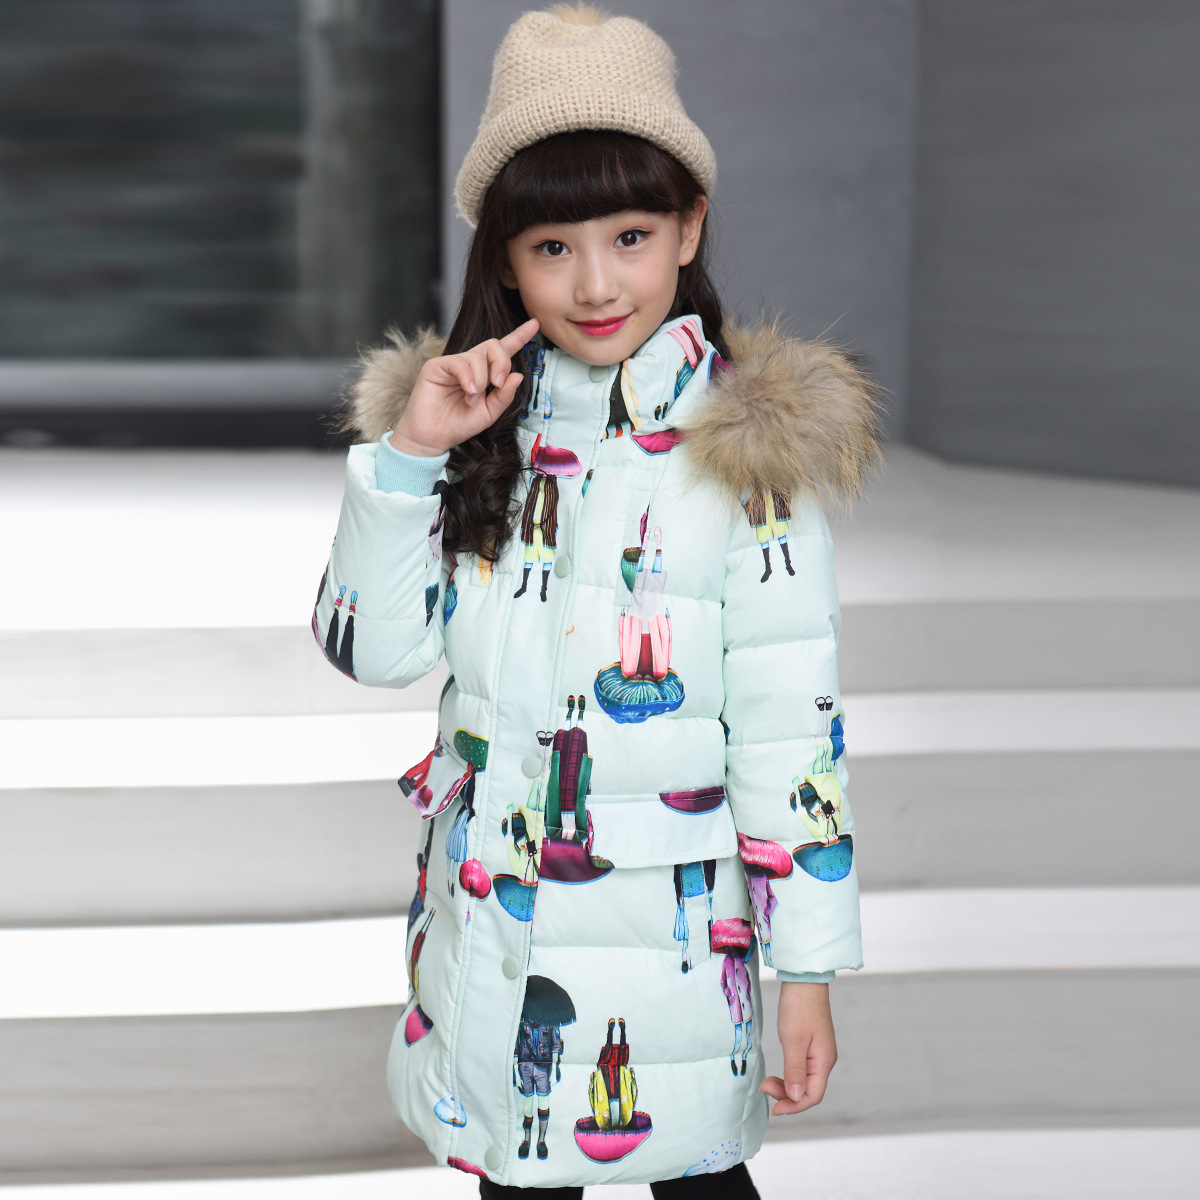 Down Jacket Children's Clothing White Duck Down New Year A Lively Girl Dressed Down Jacket In Park Happy To Play White Duck new year clothing white duck down jacket thin down jacket girls teenagers down jacket children winter filling down jacket boy